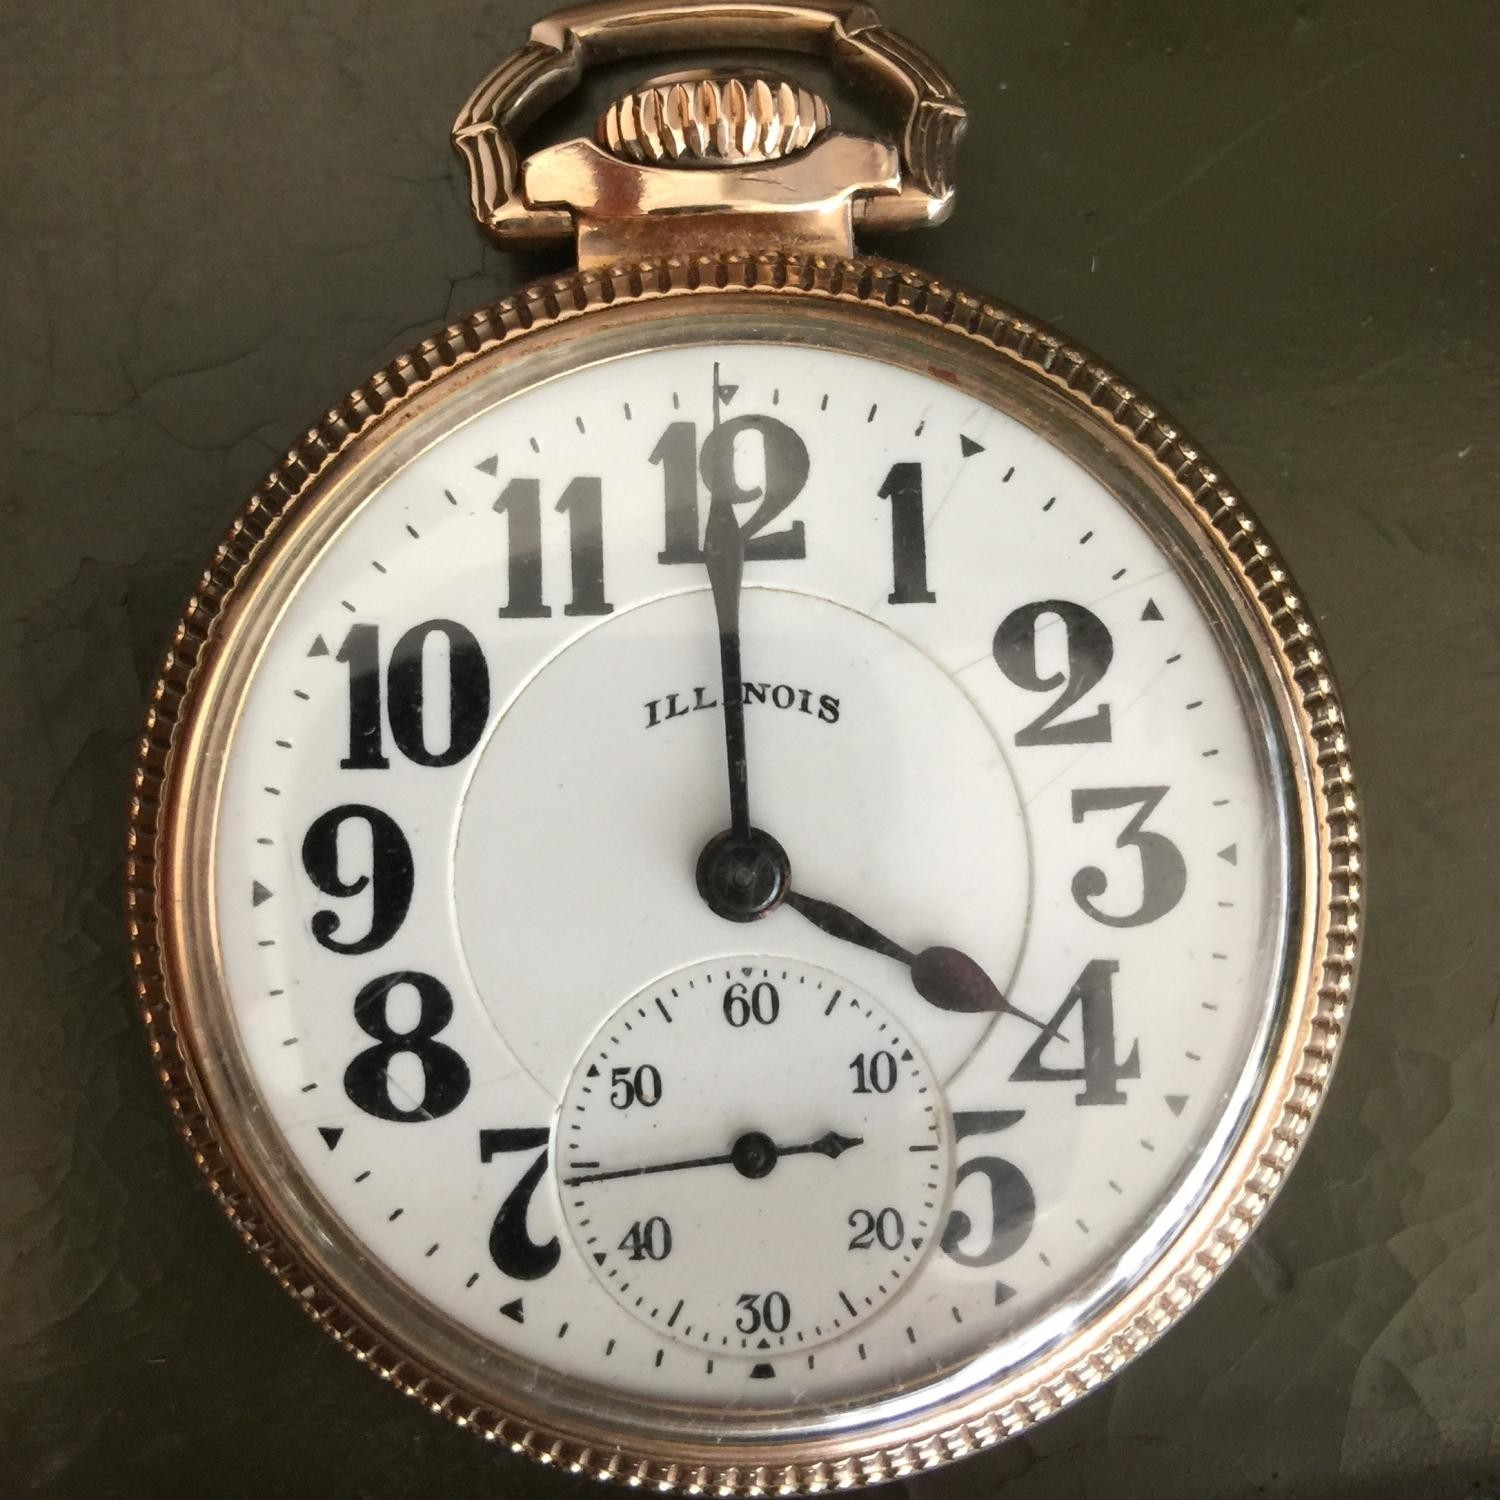 Image of Illinois Bunn Special #5000620 Dial